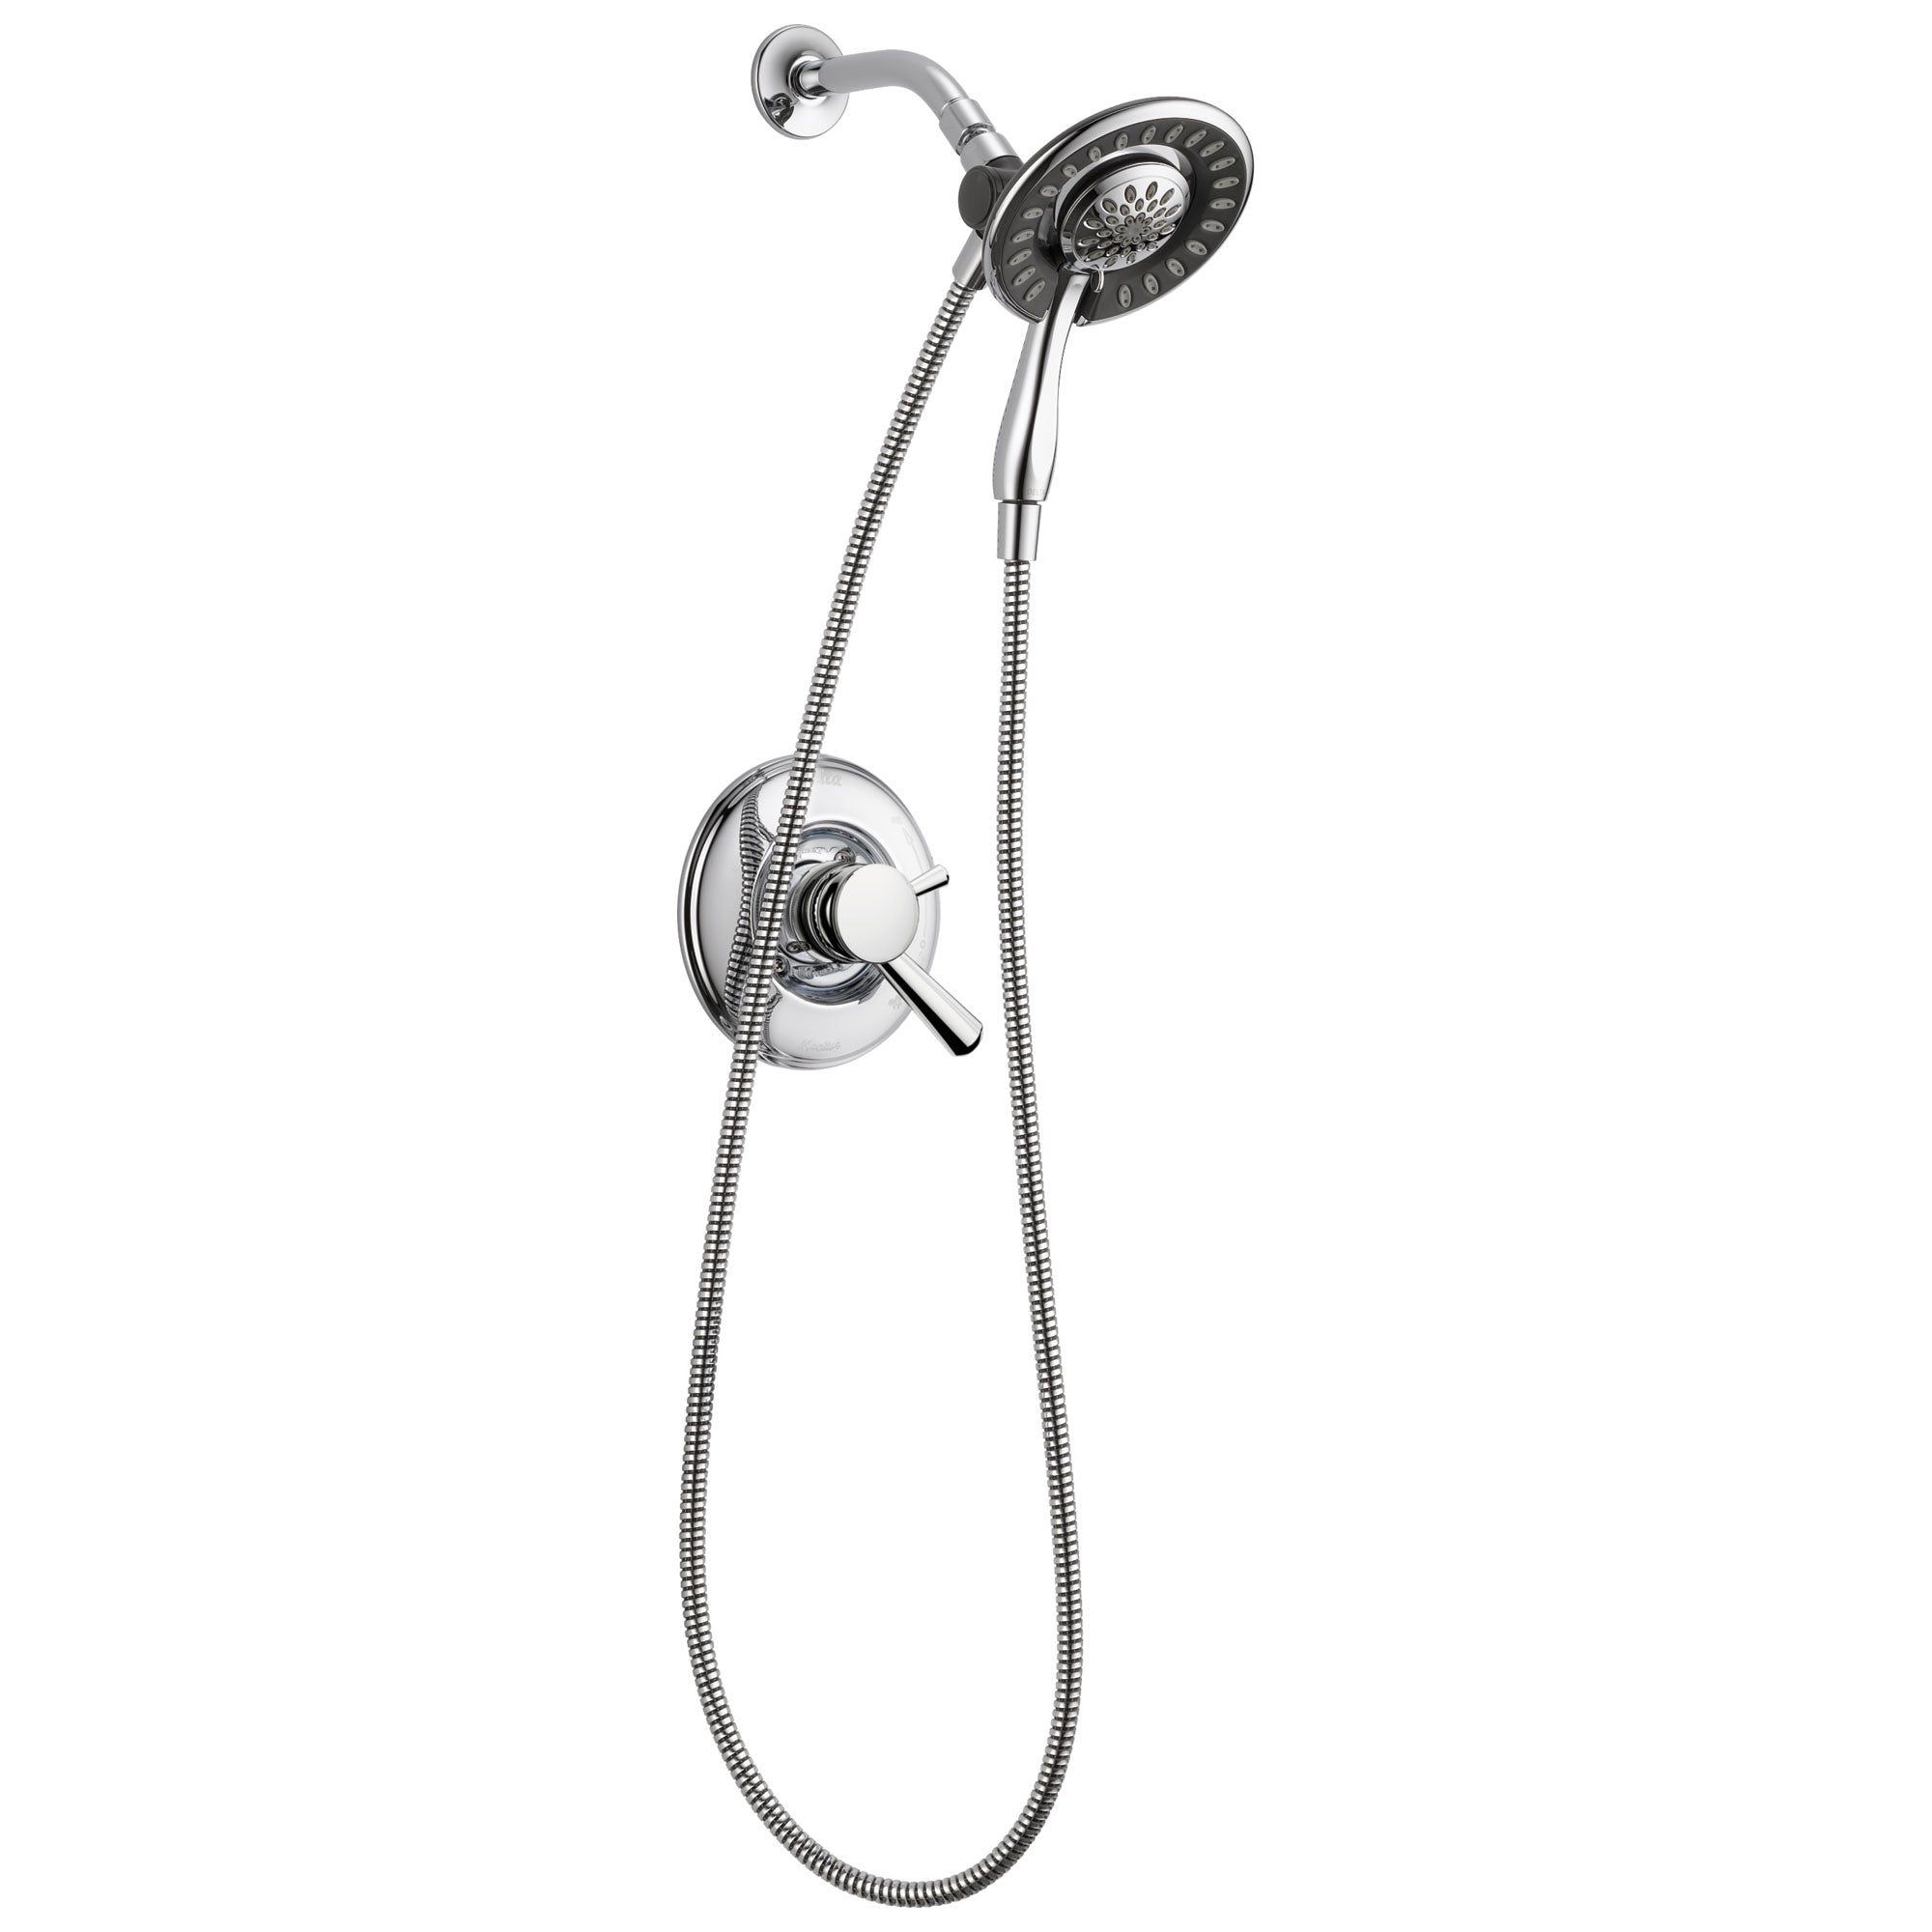 Delta Linden Collection Chrome Monitor 17 Dual Control Shower only Faucet with Handspray and Showerhead Combo Trim (Requires Rough Valve) DT17293I